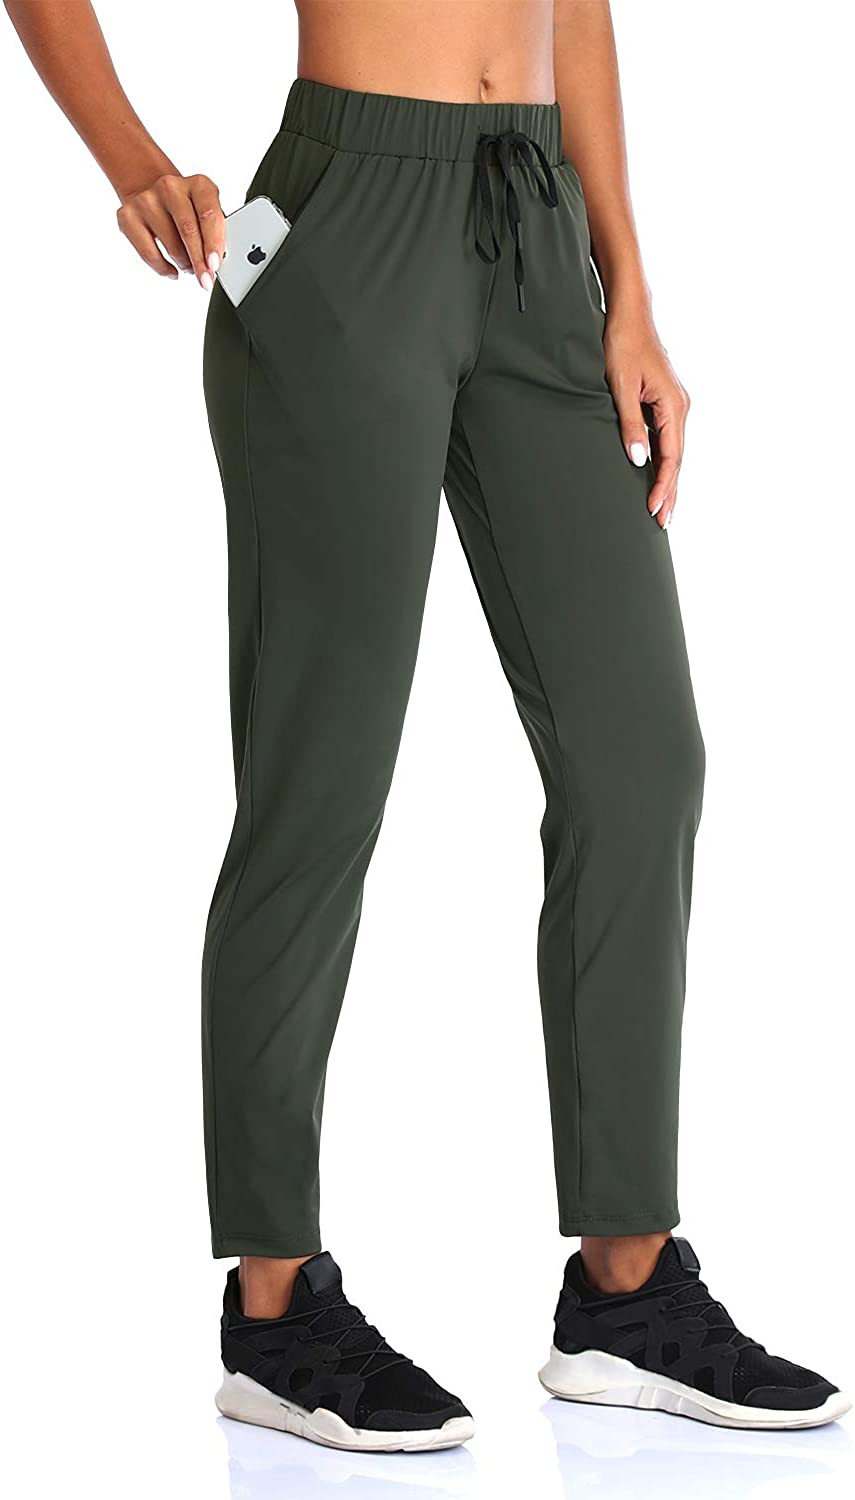 SEVEGO Women's Joggers SEAL limited product with Pockets Workout Drawstring Lounge Yo discount